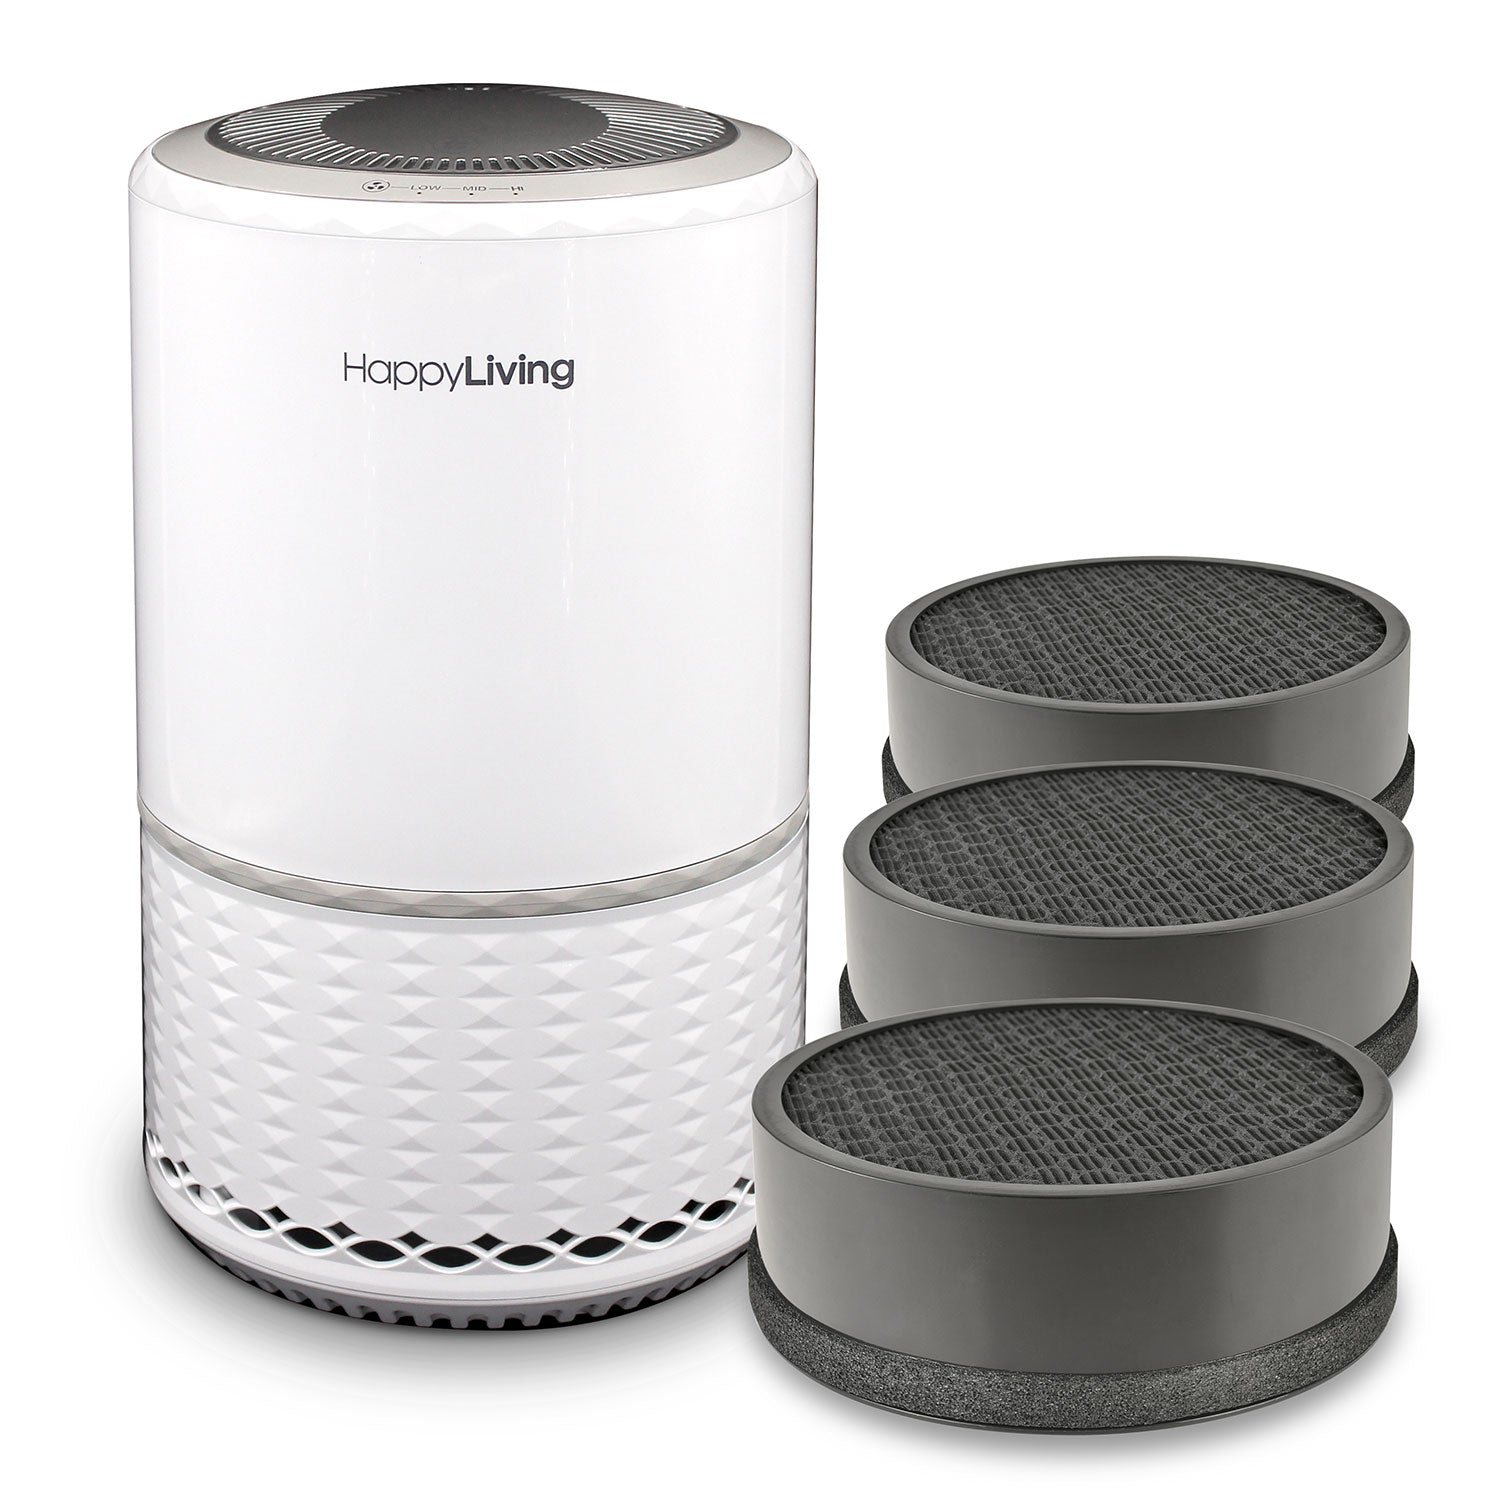 An image of a white HL-001 air purifier bundle.